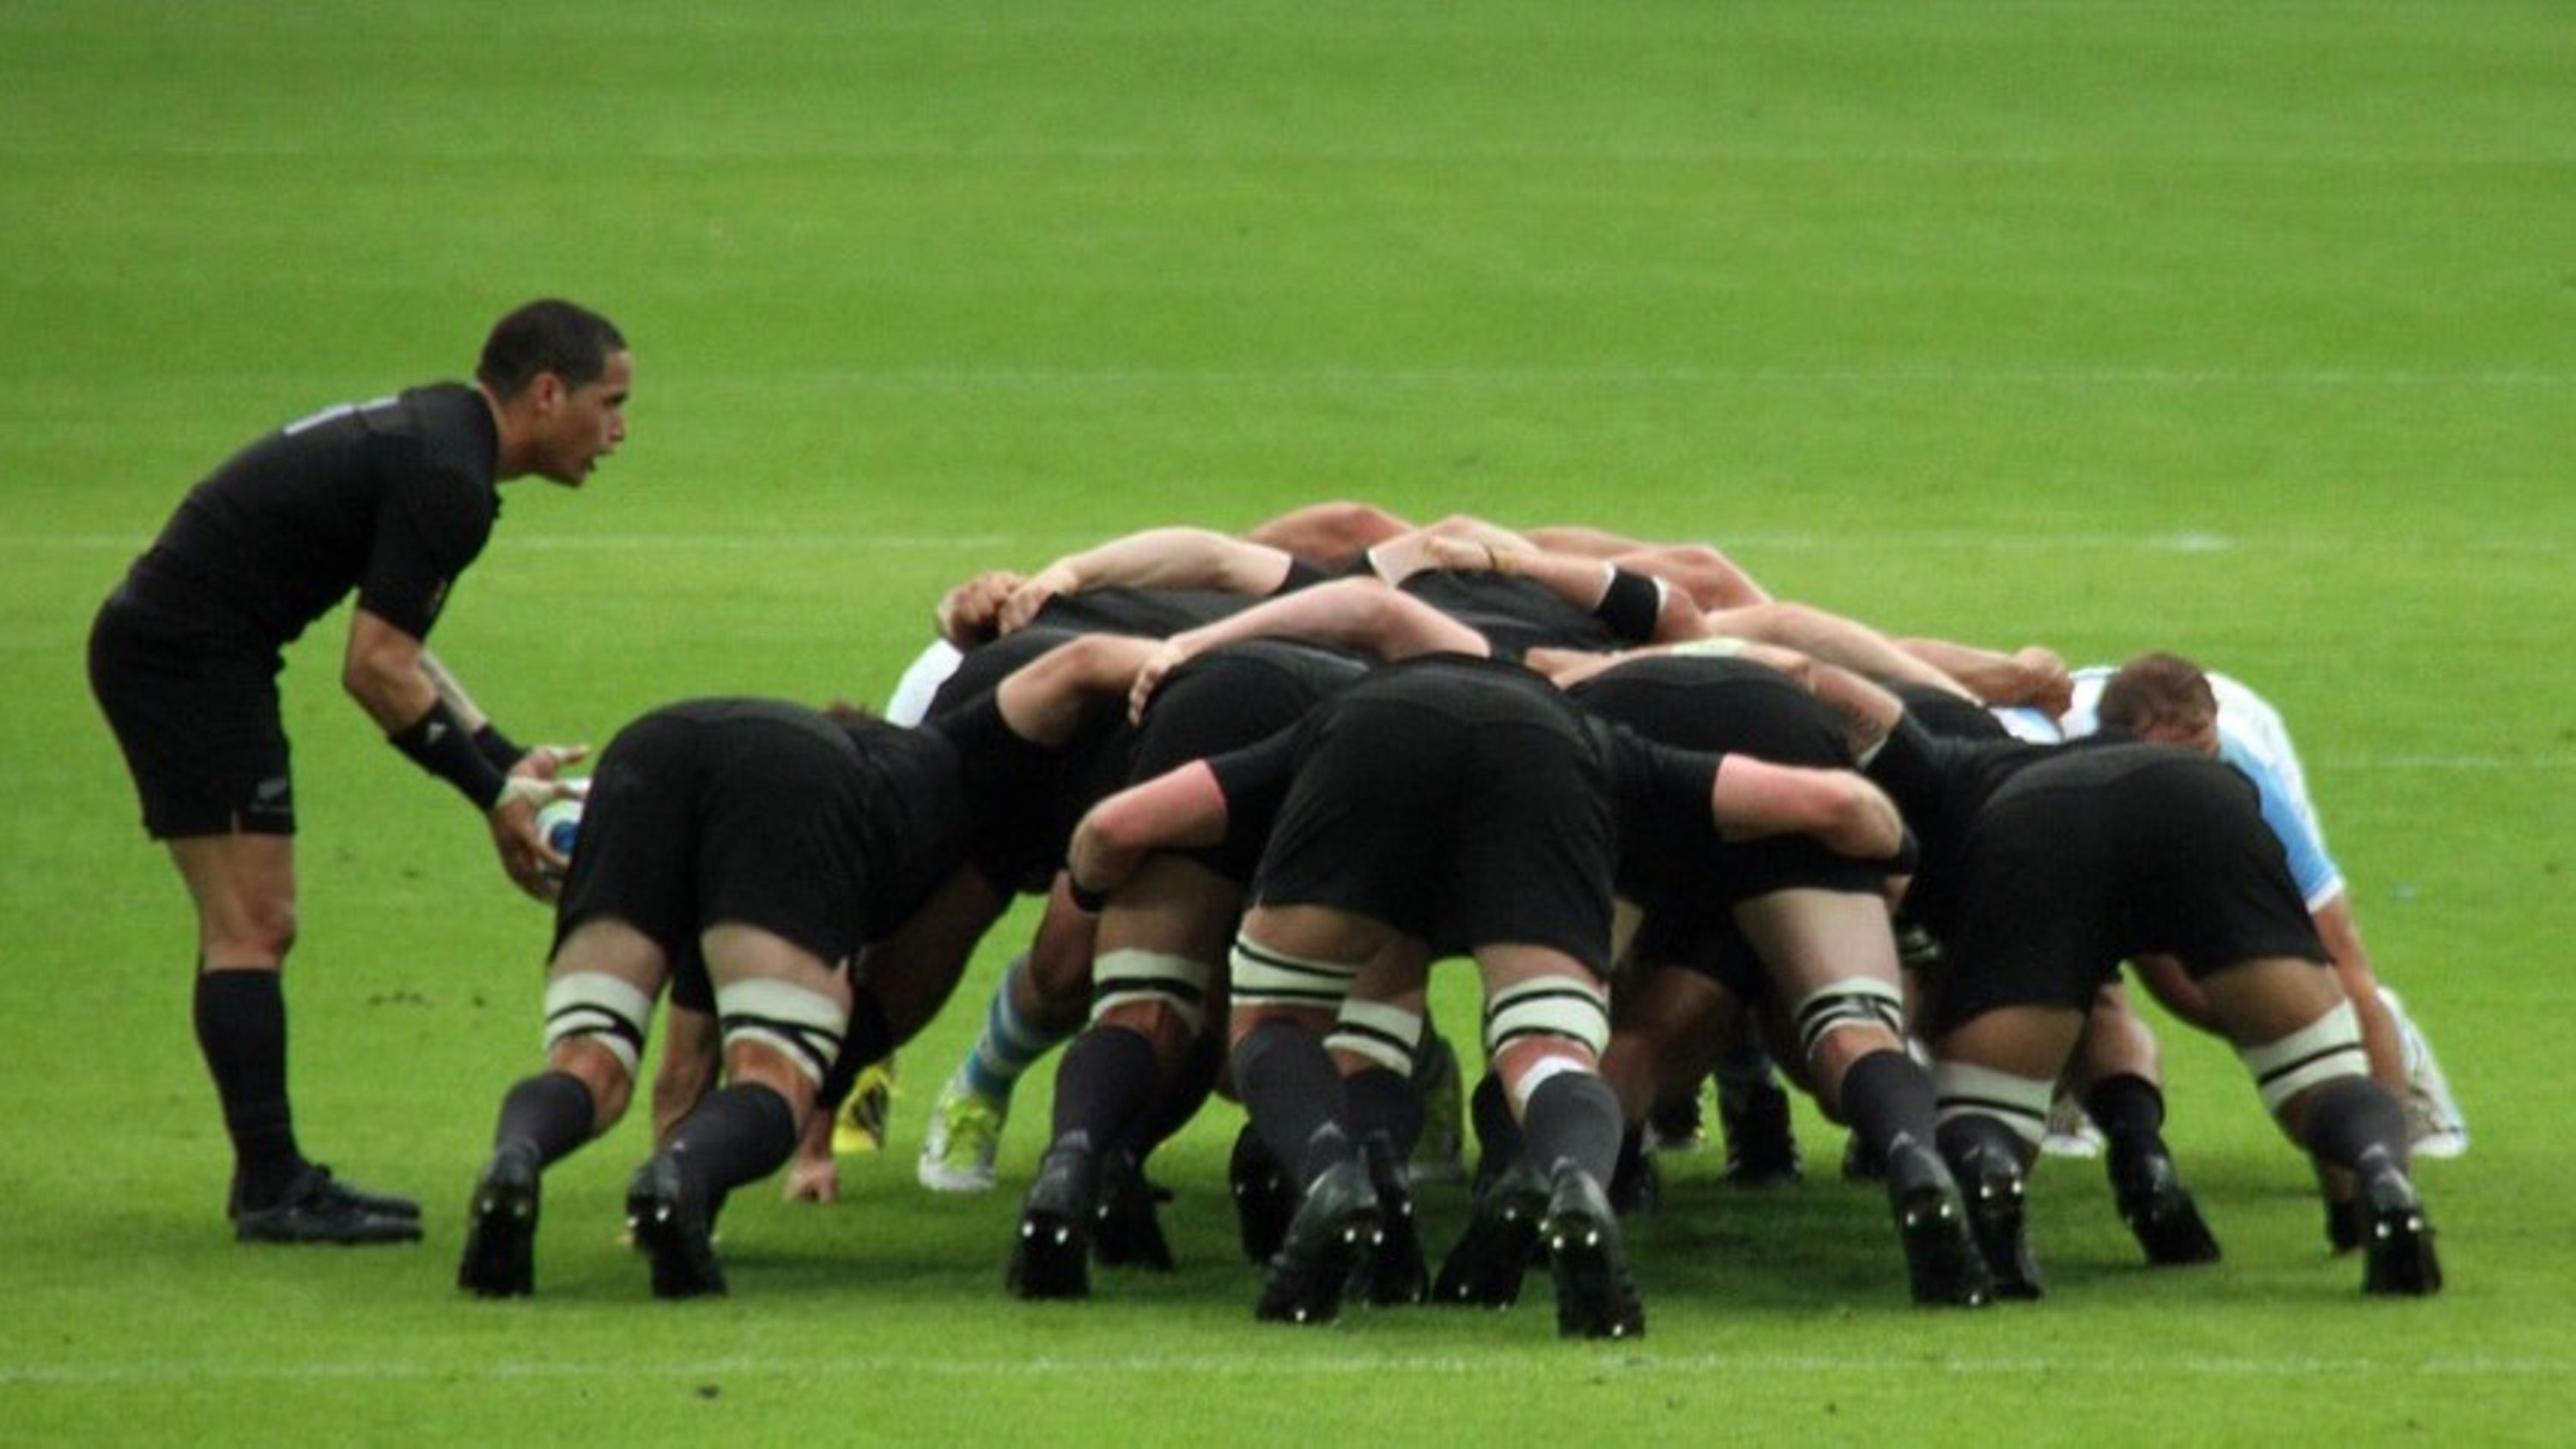 Rugby players standing in formation performing a scrum during a game